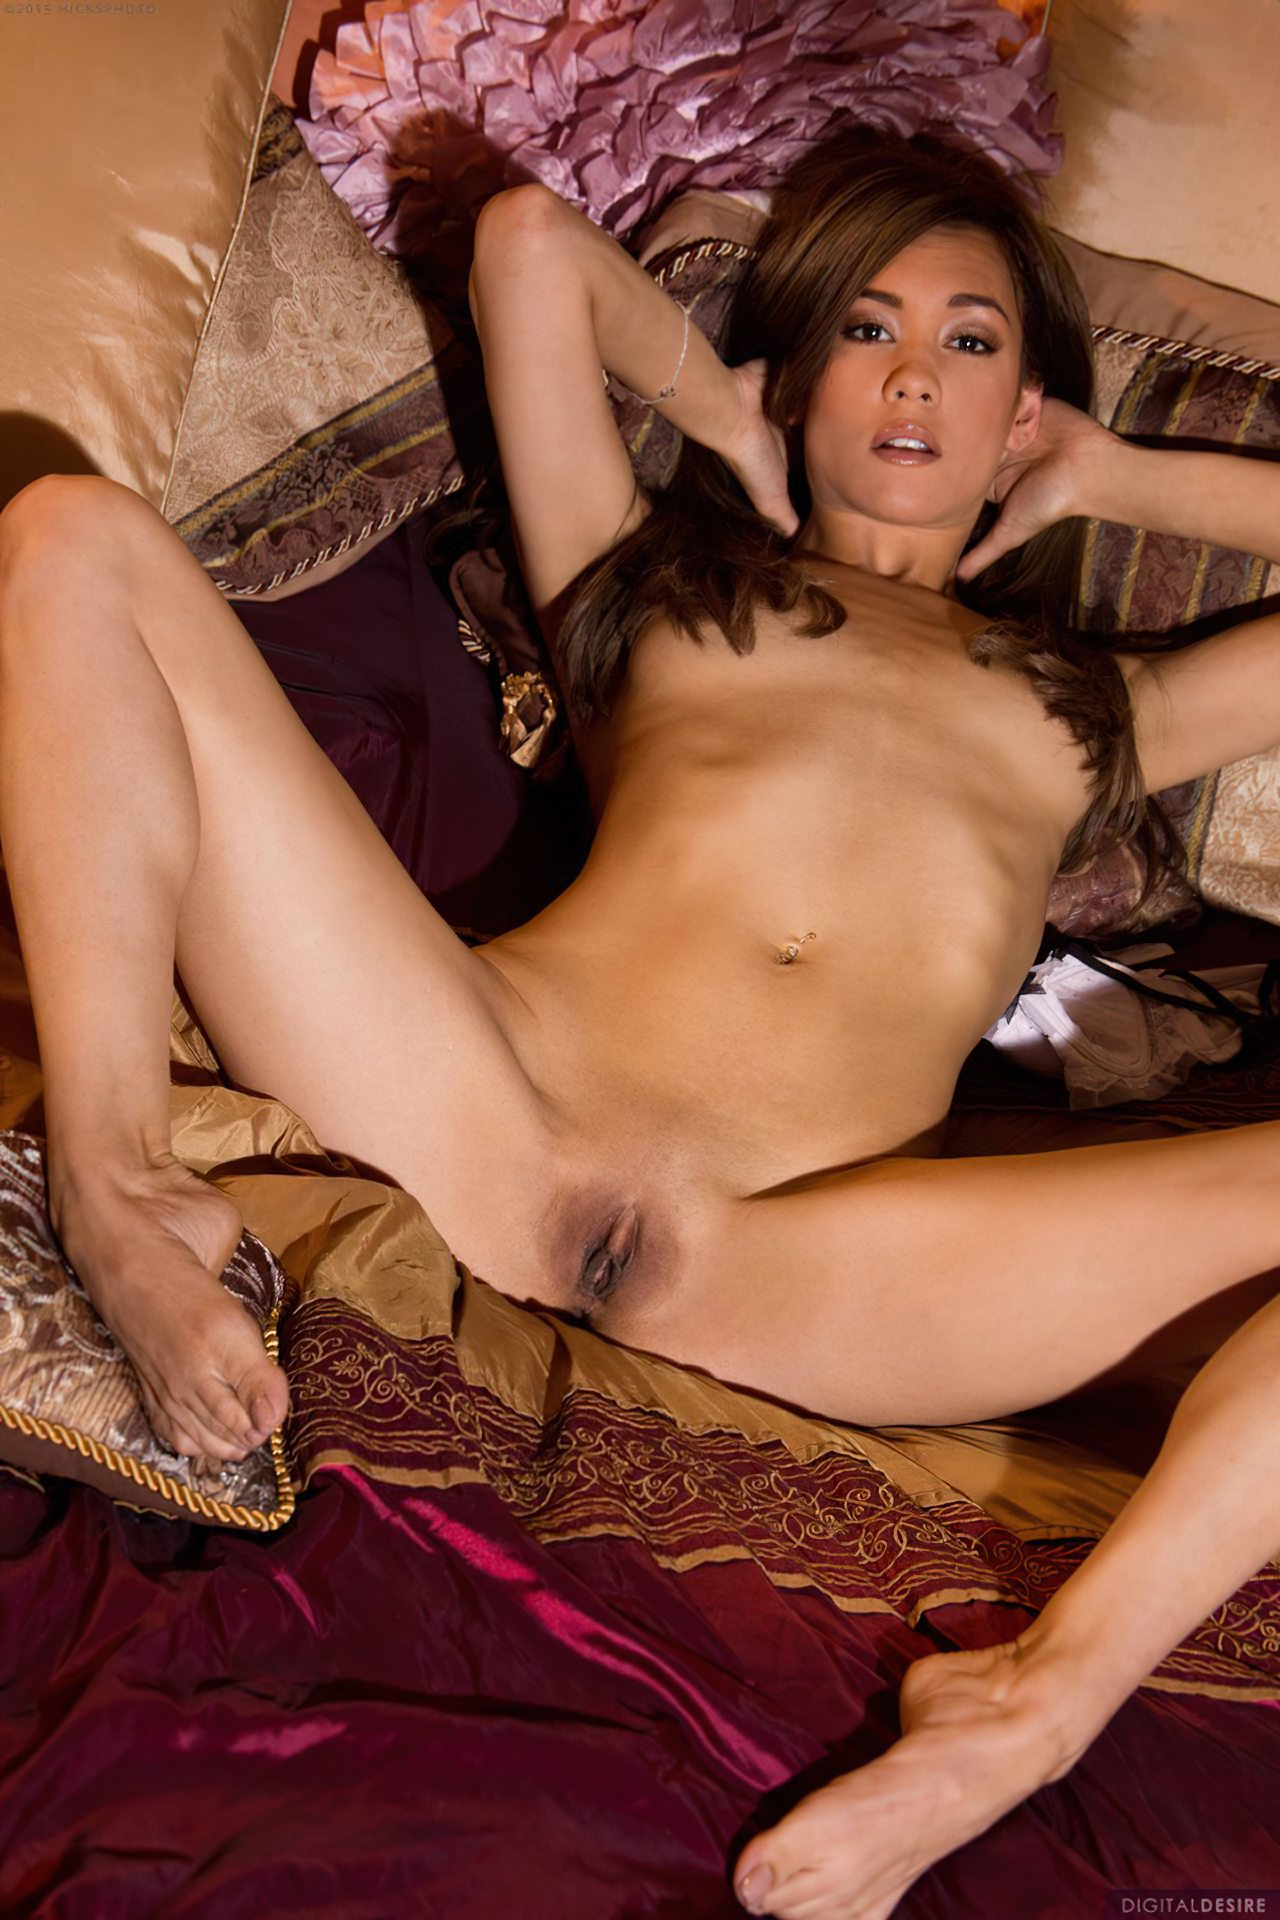 Imgs Sexys (43)